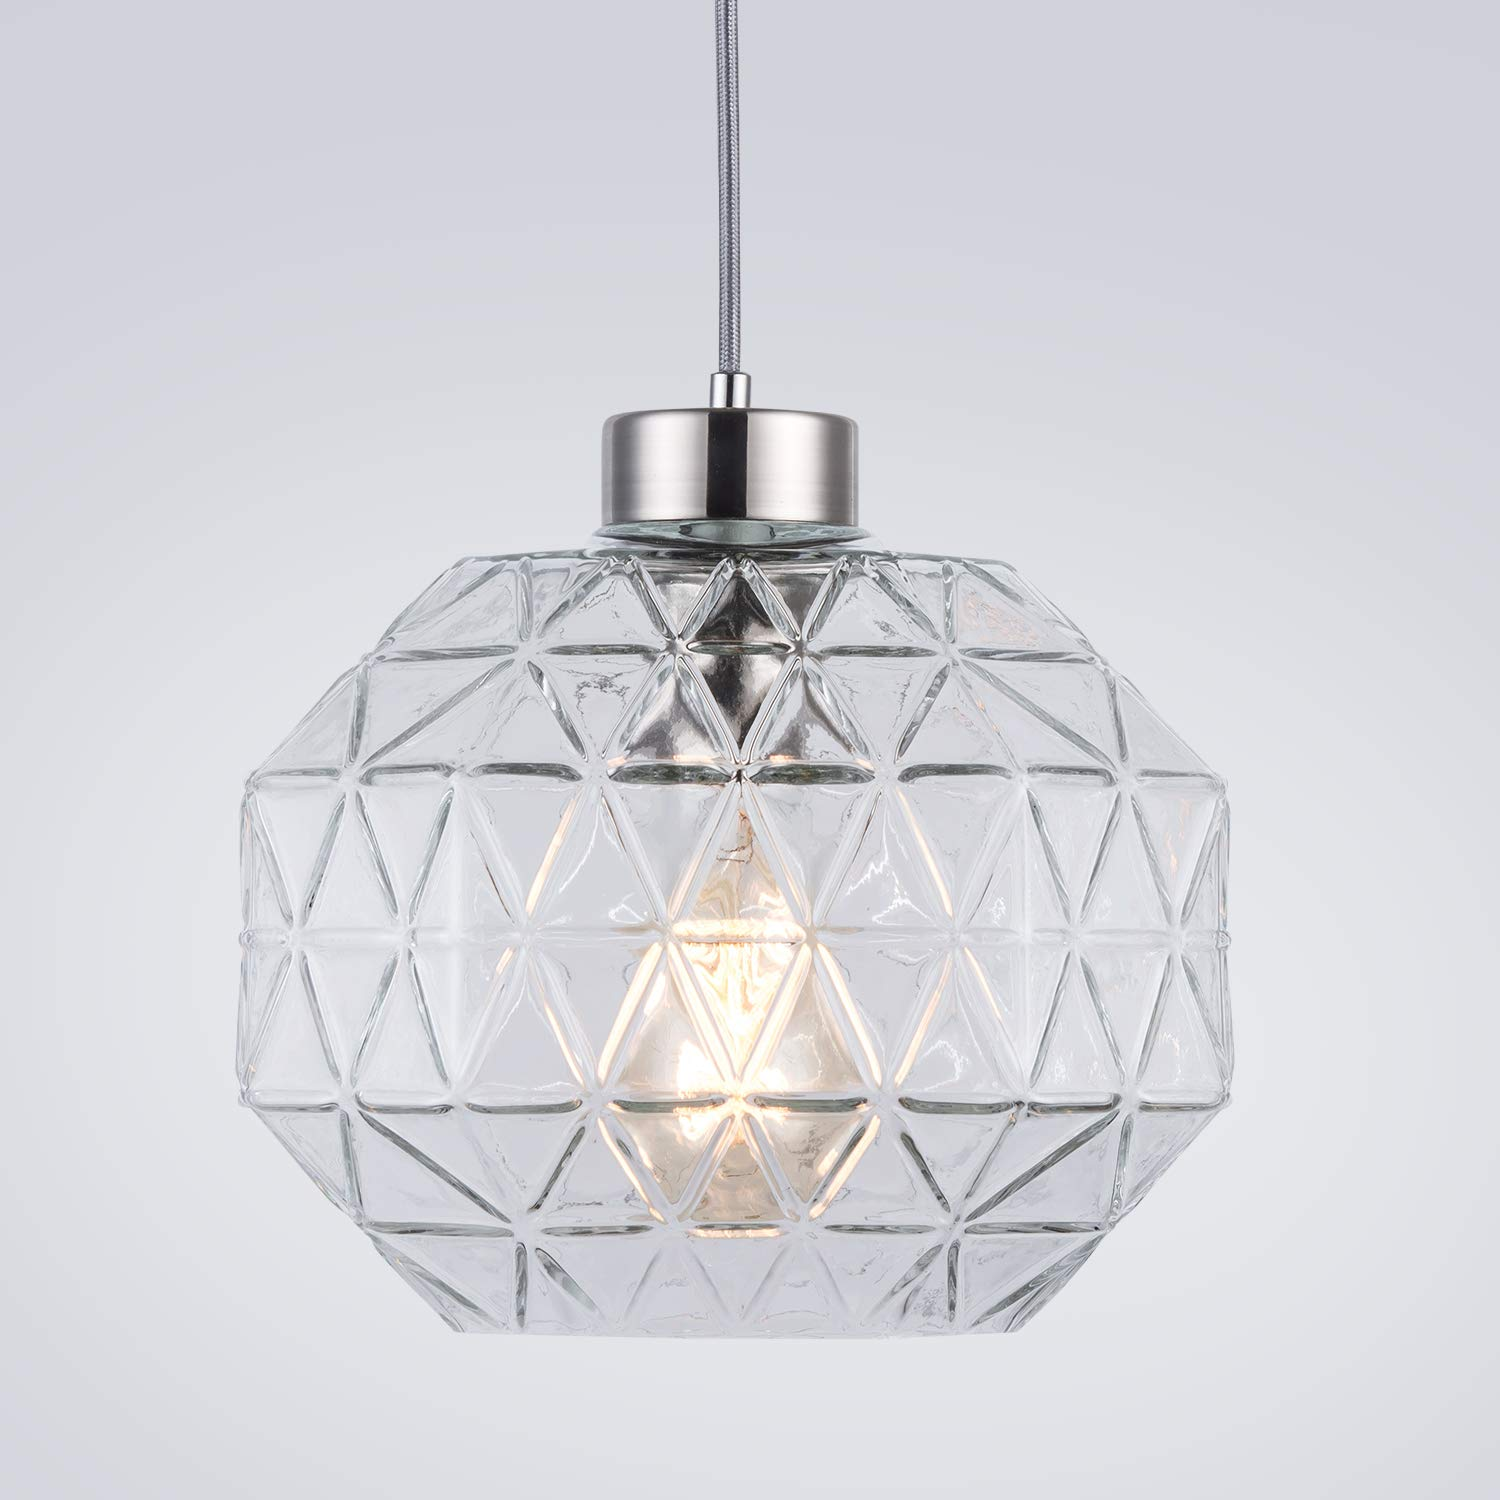 Contemporary Pendant Light Handblown Clear Glass Shade Drop Ceiling Lights, Brushed Nickel Hanging Light Fixture for Kitchen Island Dining Room,1 Light